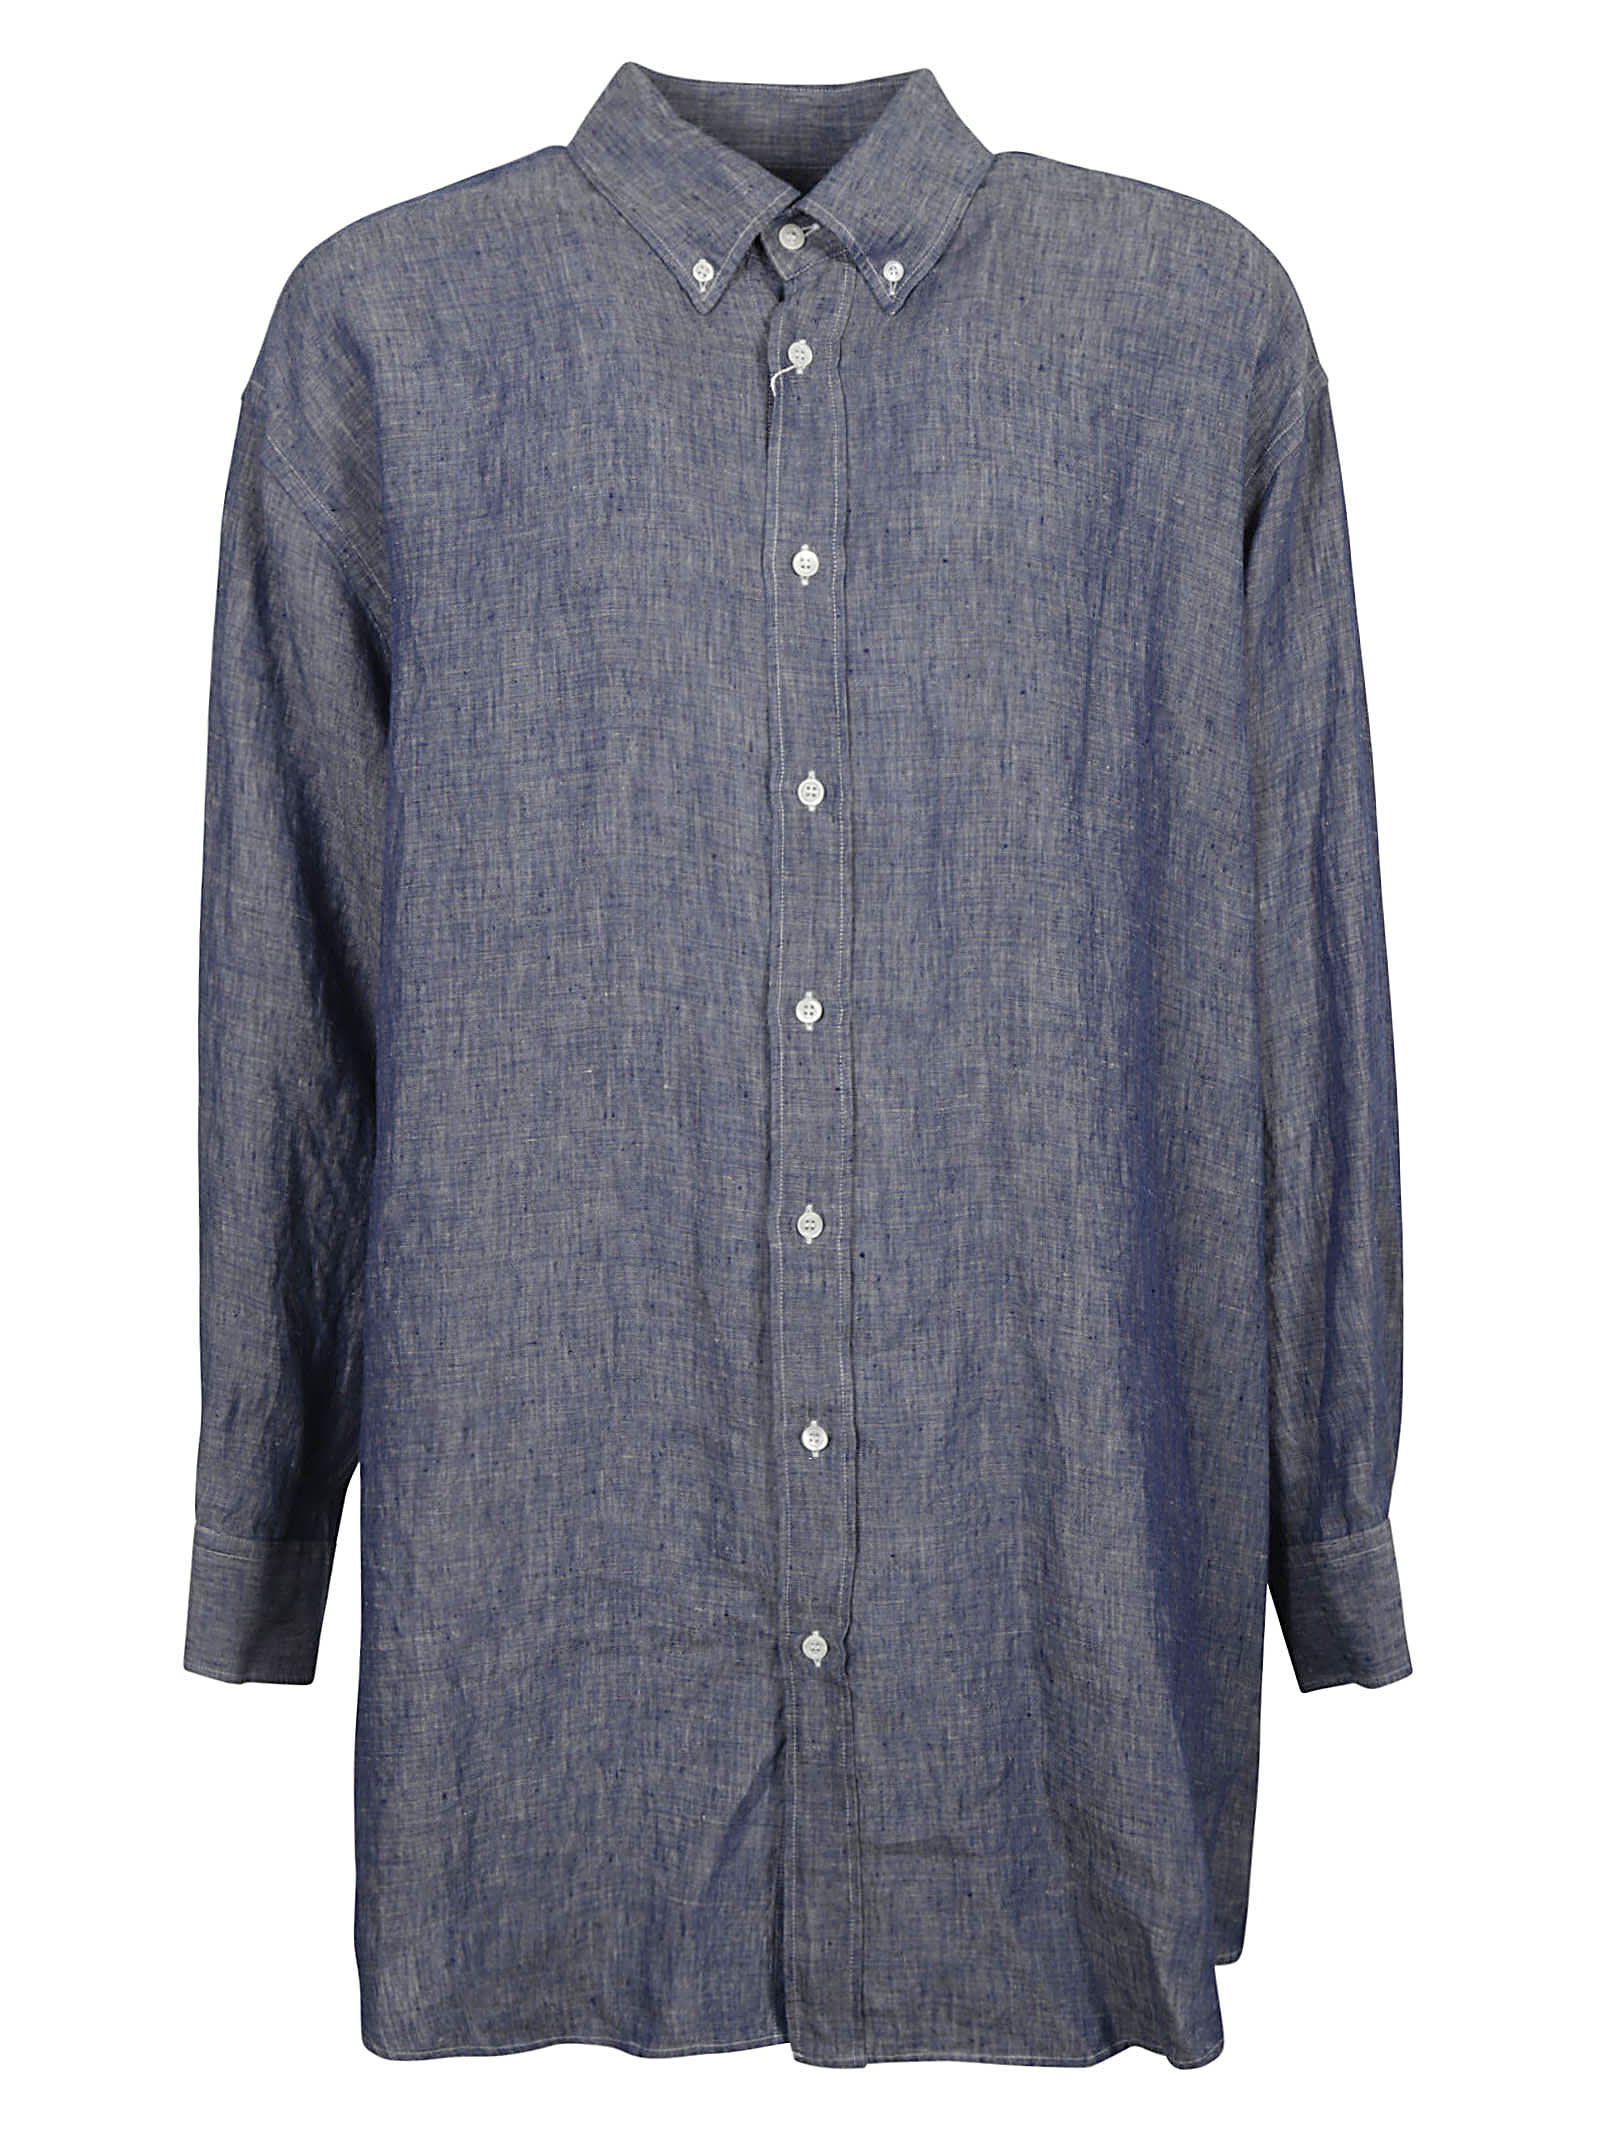 Maison Margiela OVERSIZED DENIM SHIRT